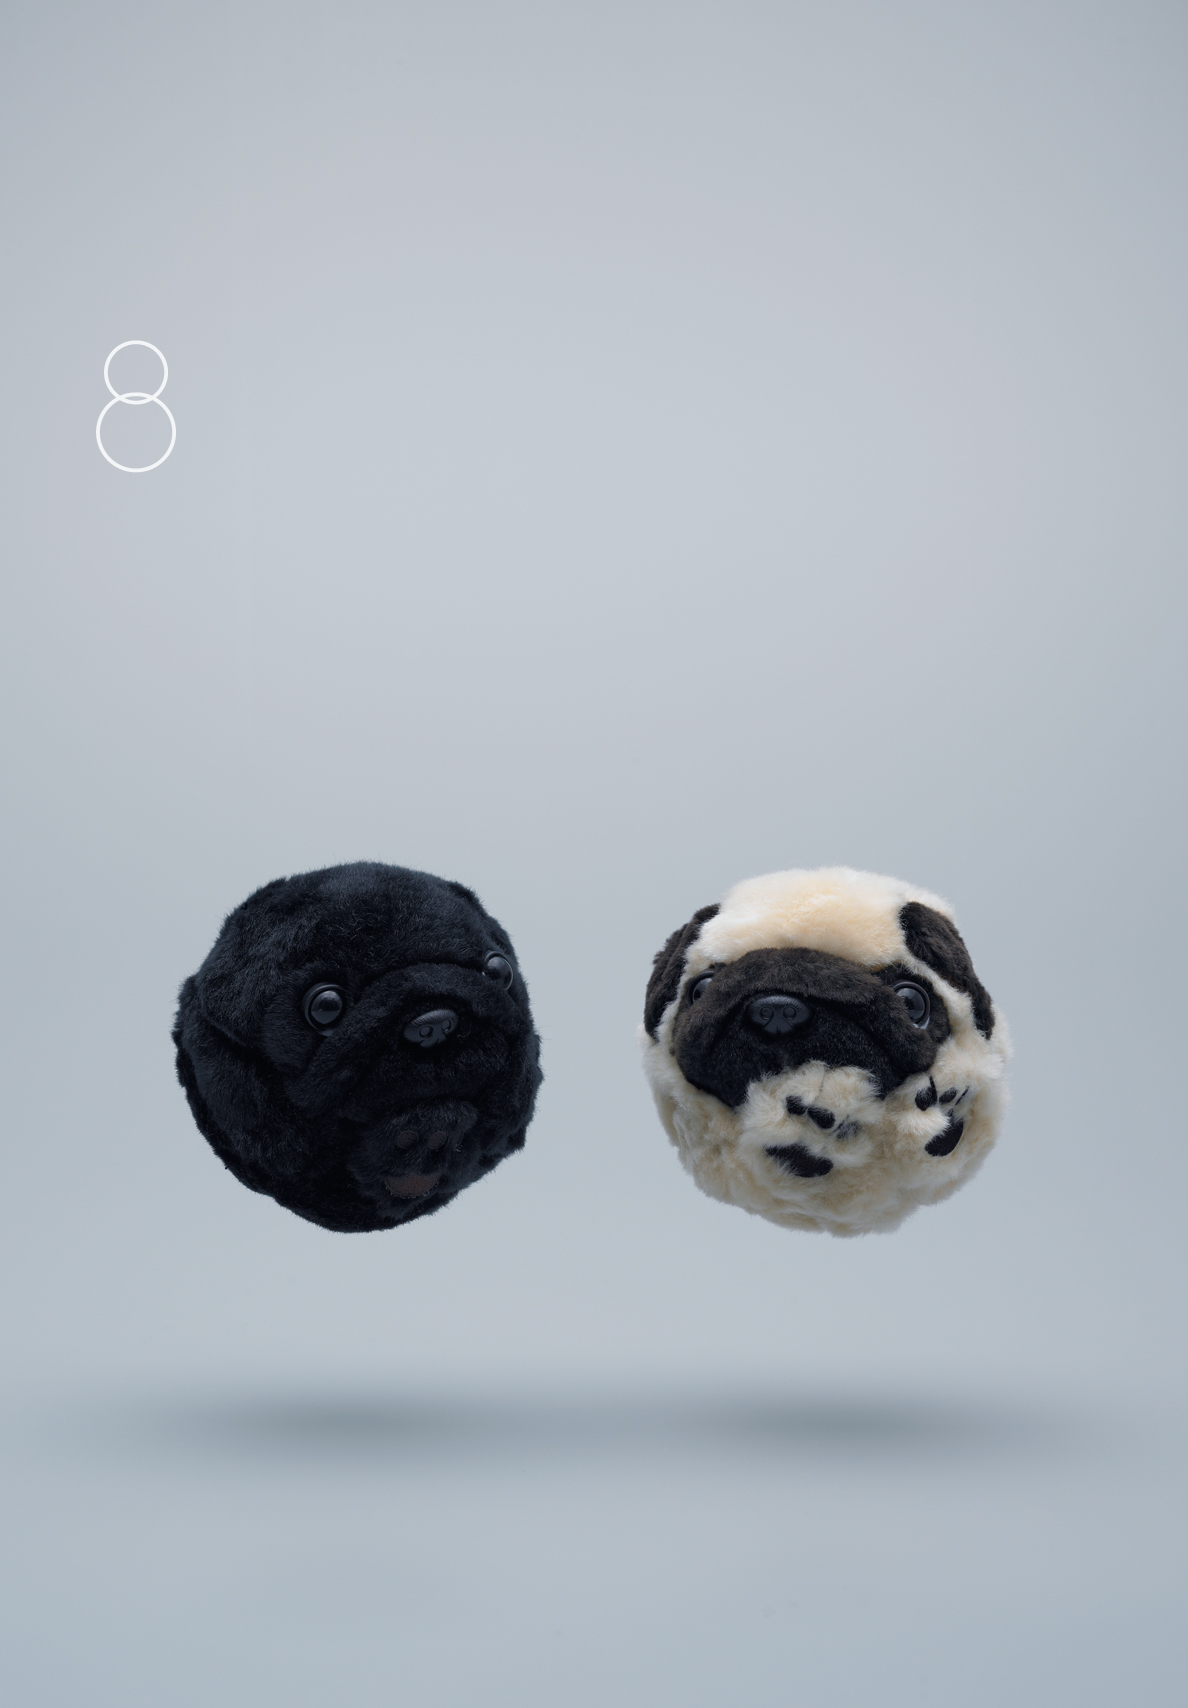 10two dogsのコピー